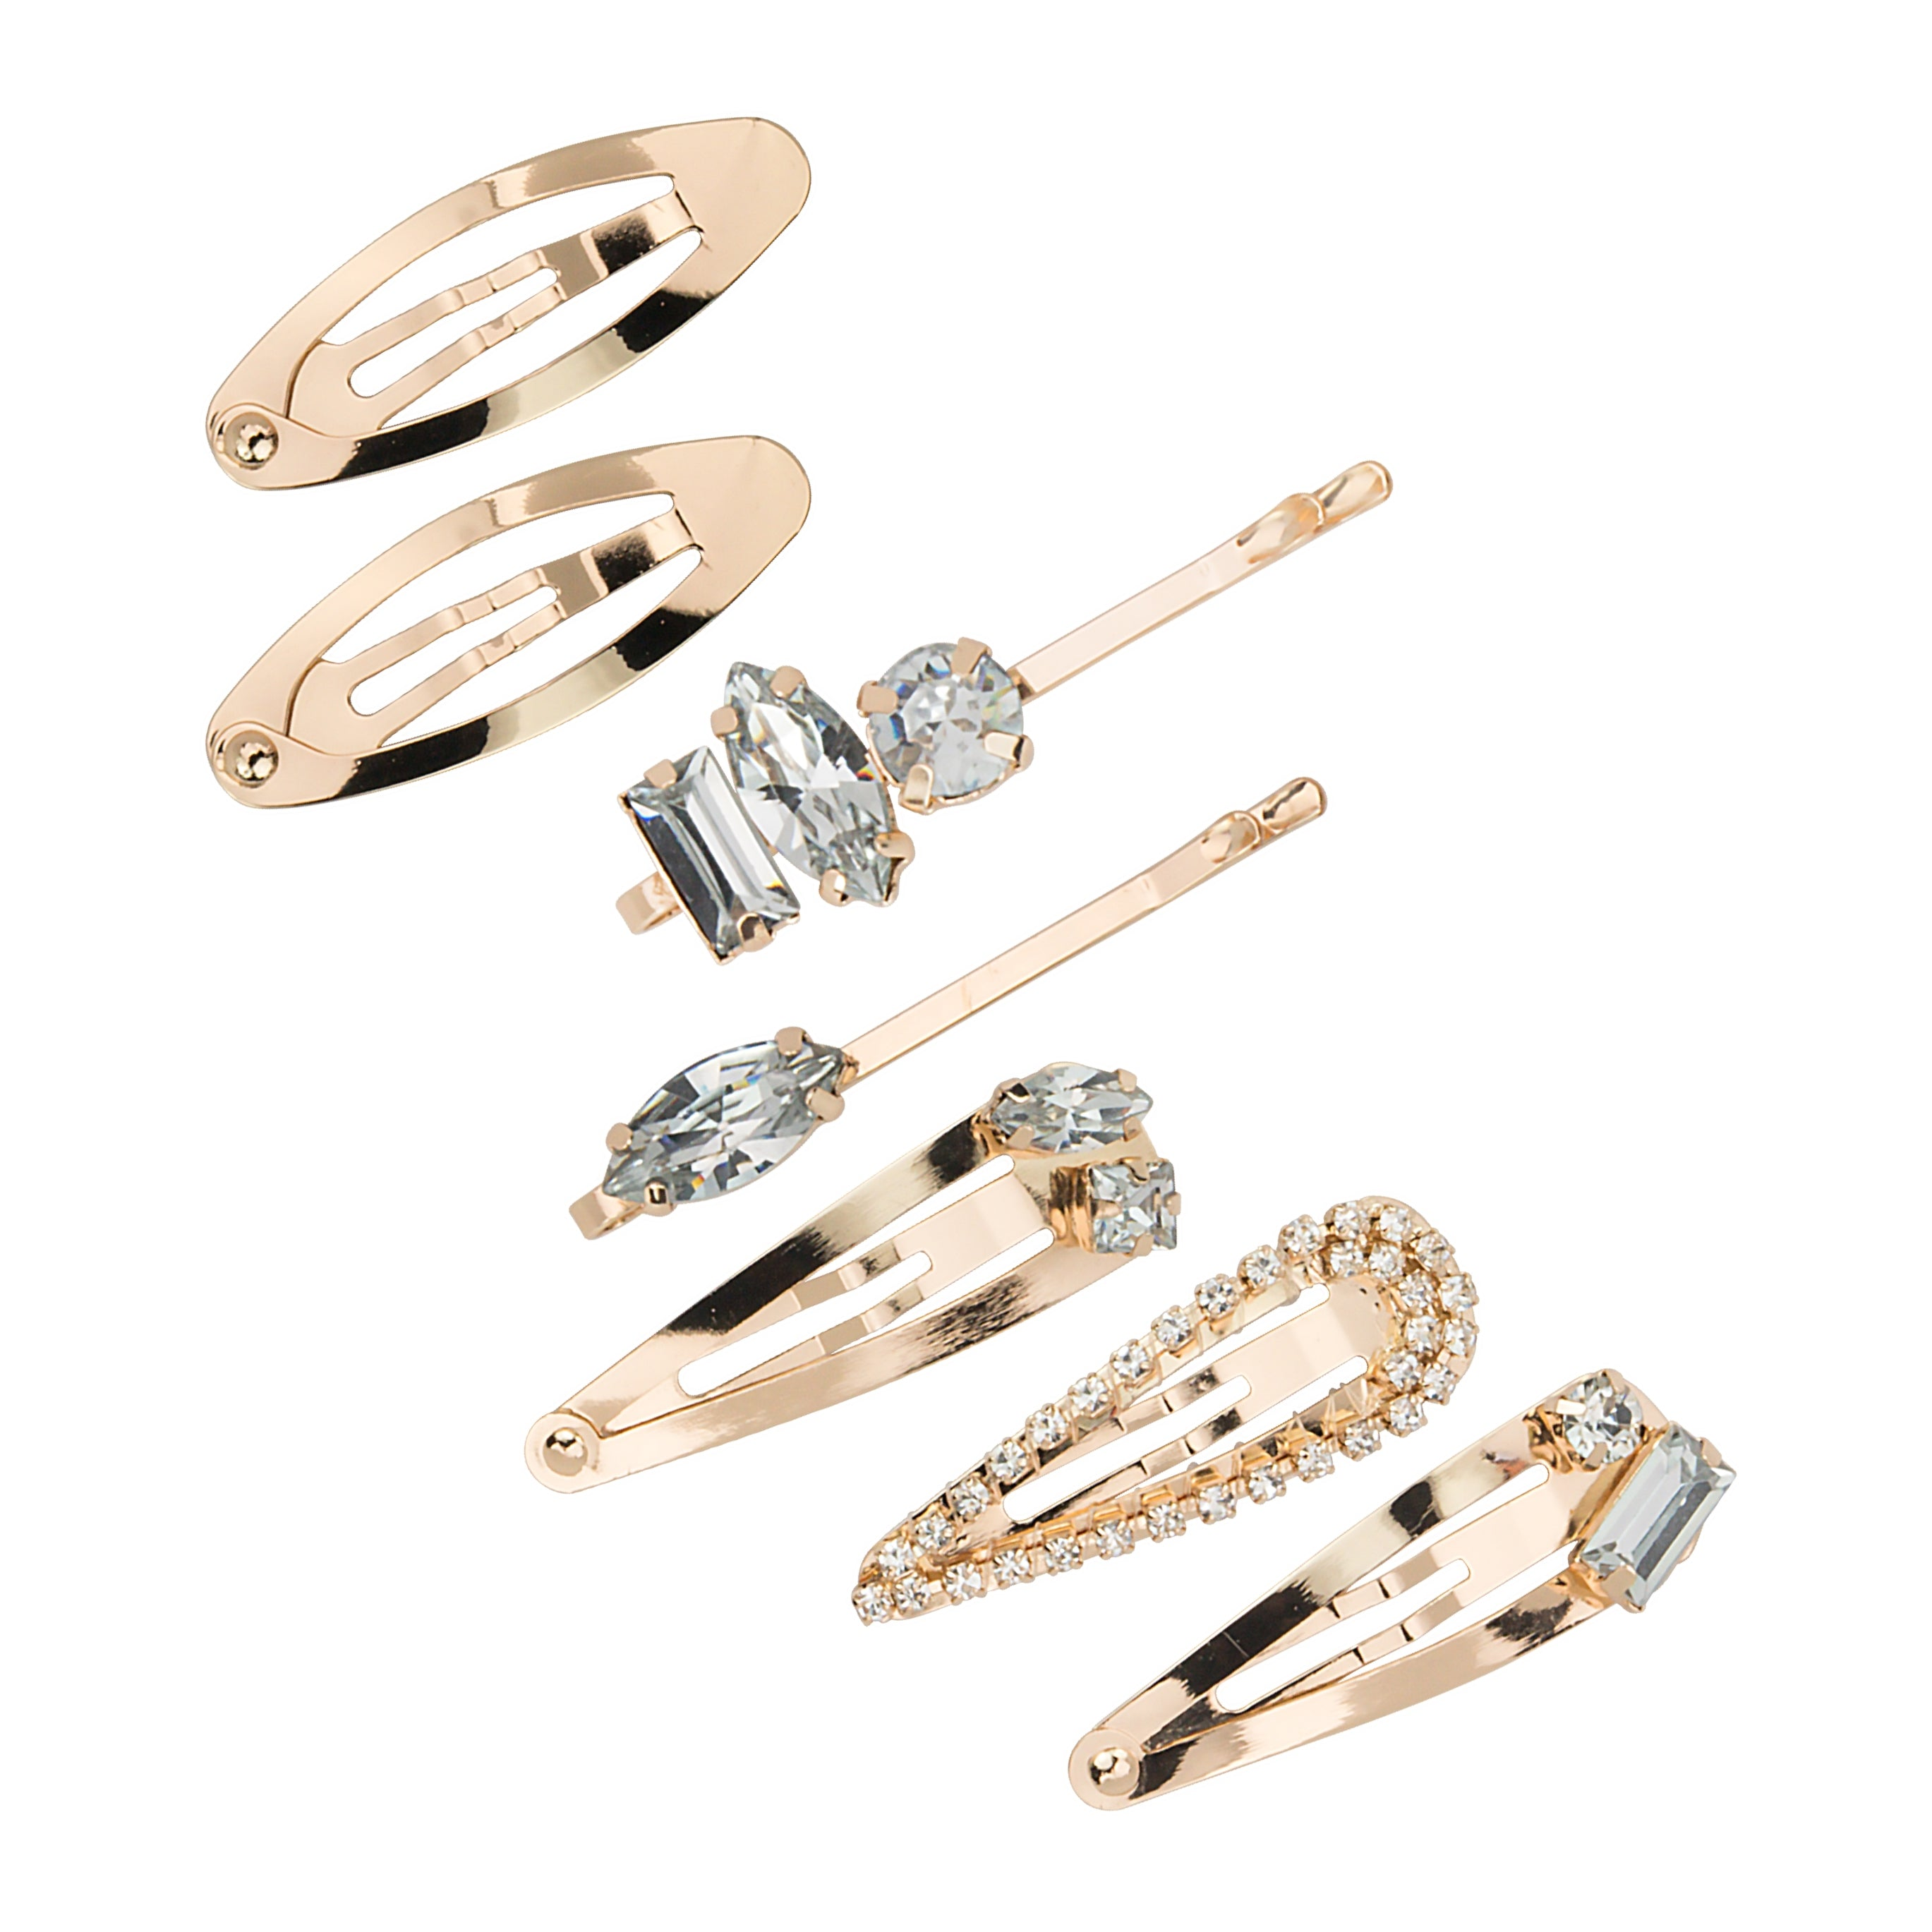 Micro Stackable Snap Clips 7pc Set - Gold